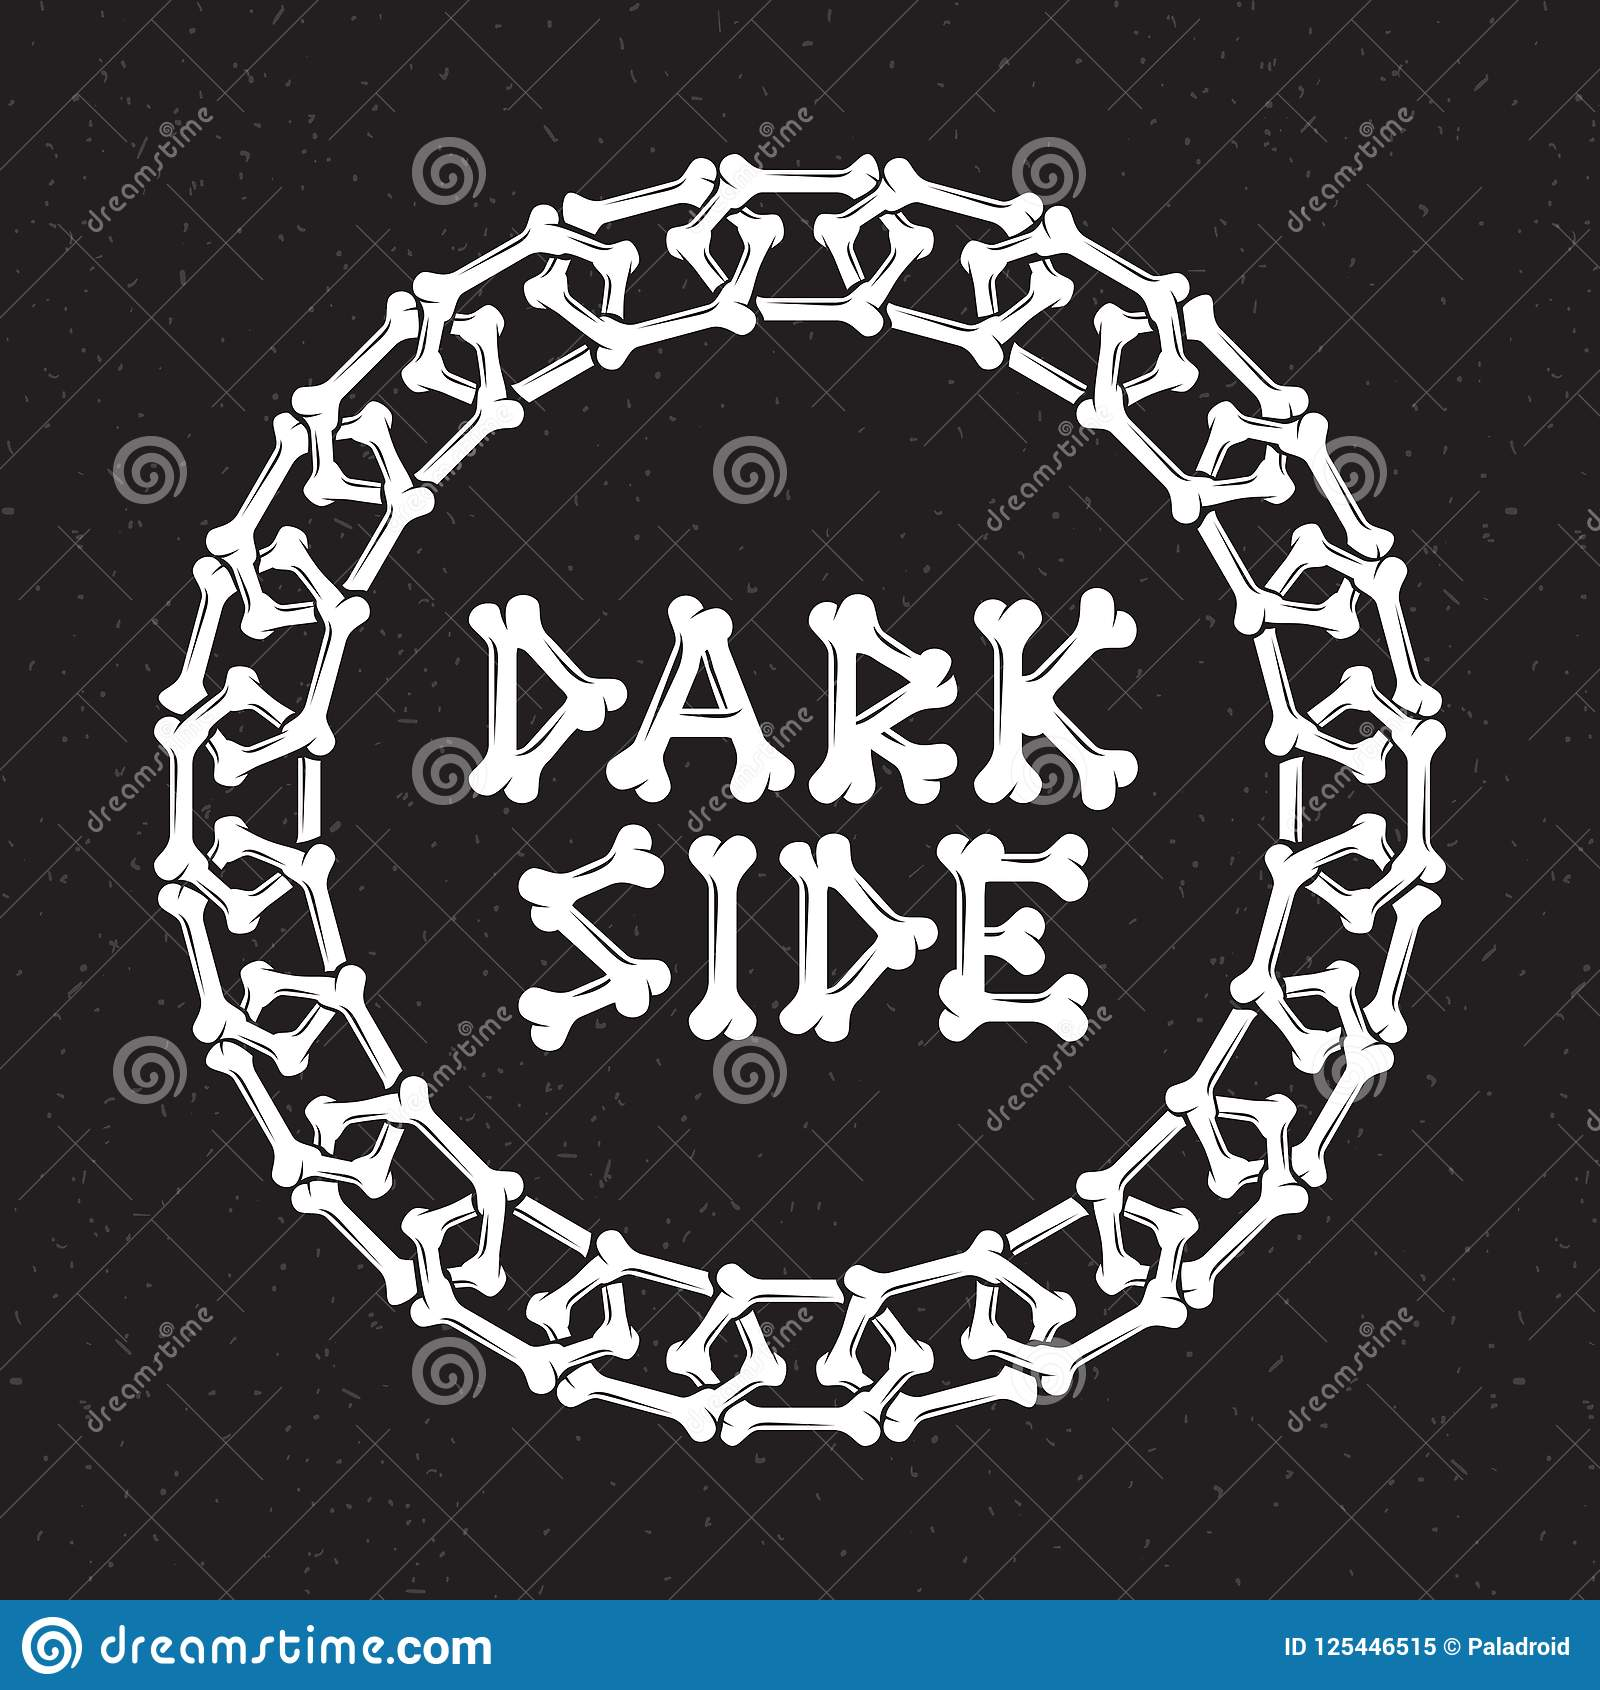 Dark Side Of A Chain Of Bones Stock Vector Illustration Of